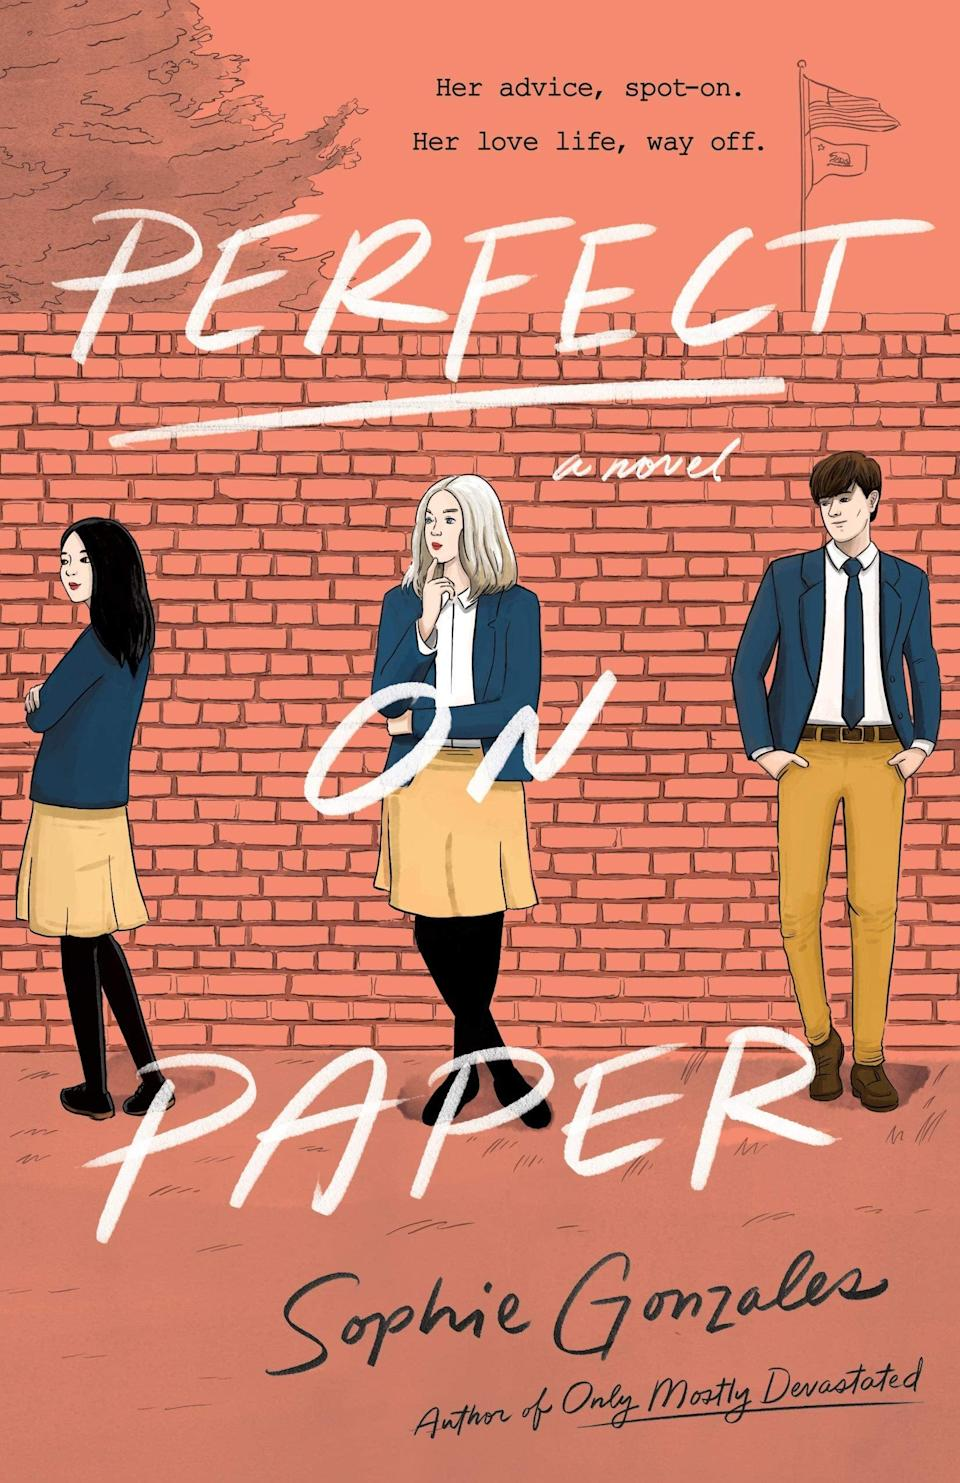 <p>Darcy Phillips is an expert at giving dating advice to her classmates in Sophie Gonzales's <span><strong>Perfect on Paper</strong></span>. However, her own love life is a mess thanks to her crush on her best friend, Brooke, and things only become more complicated when the hottest guy in school blackmails Darcy into giving him dating advice to win back his ex. </p> <p><em>Out March 9</em></p>